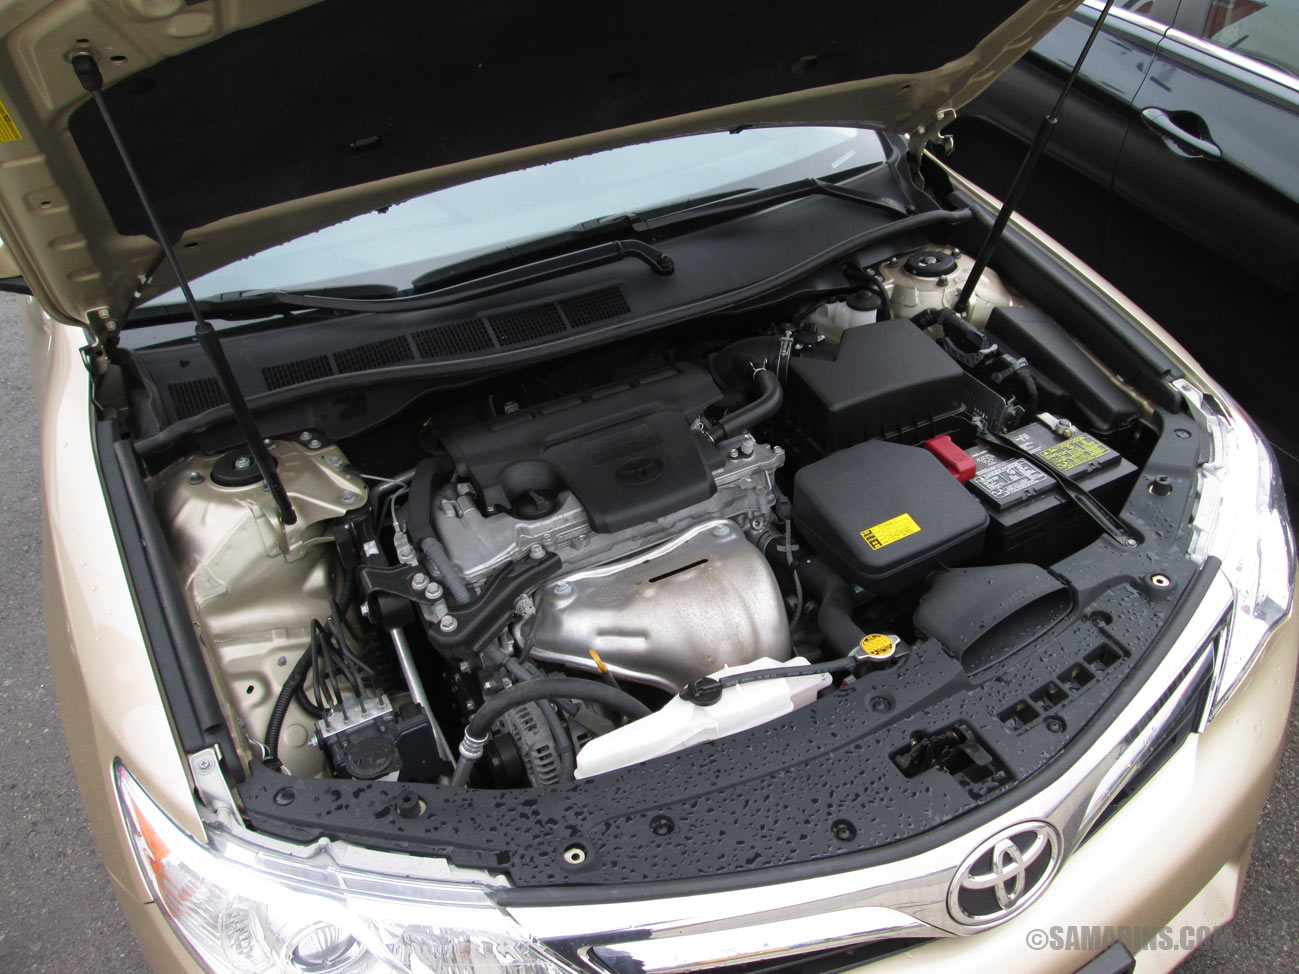 [SCHEMATICS_4FR]  Toyota Camry 2012-2017: problems, fuel economy, engines, driving  experience, photos | 2015 Toyota V6 Engine Diagram |  | Samarins.com